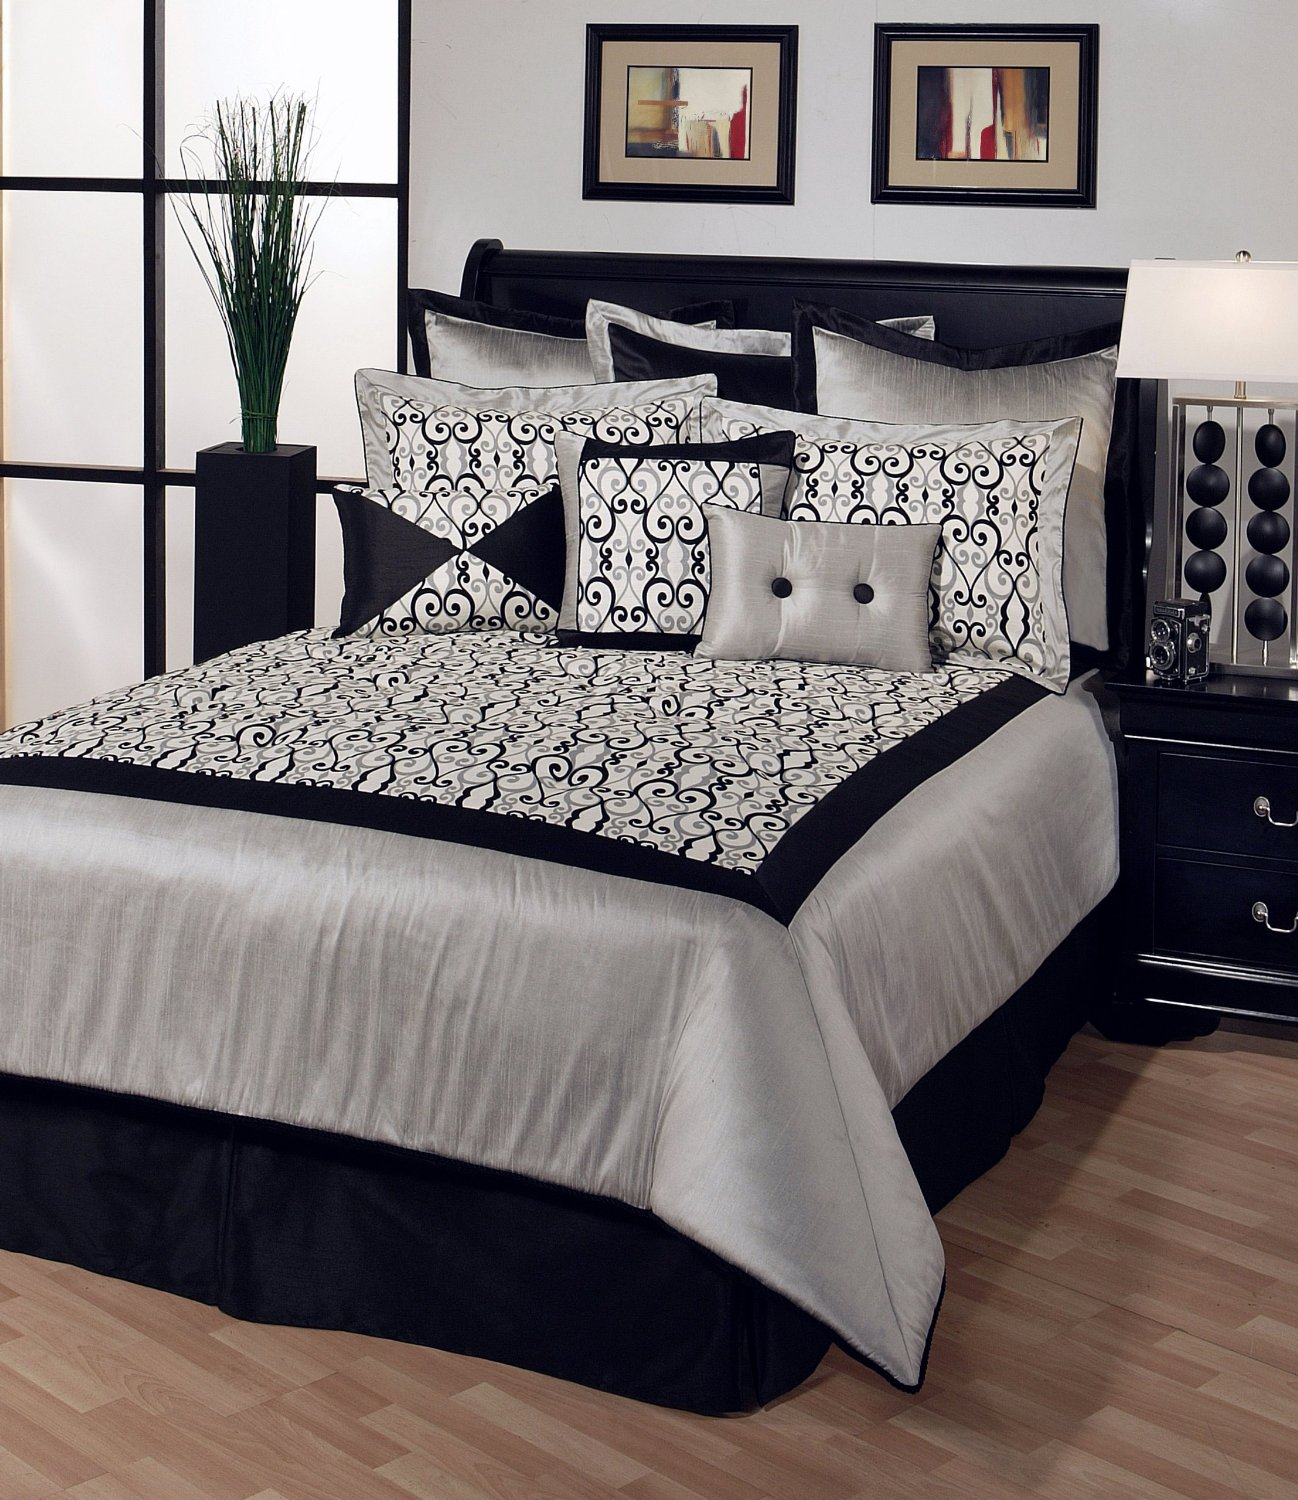 Bricolage e decora o decorar um quarto de casal em preto for Black bed bedroom ideas